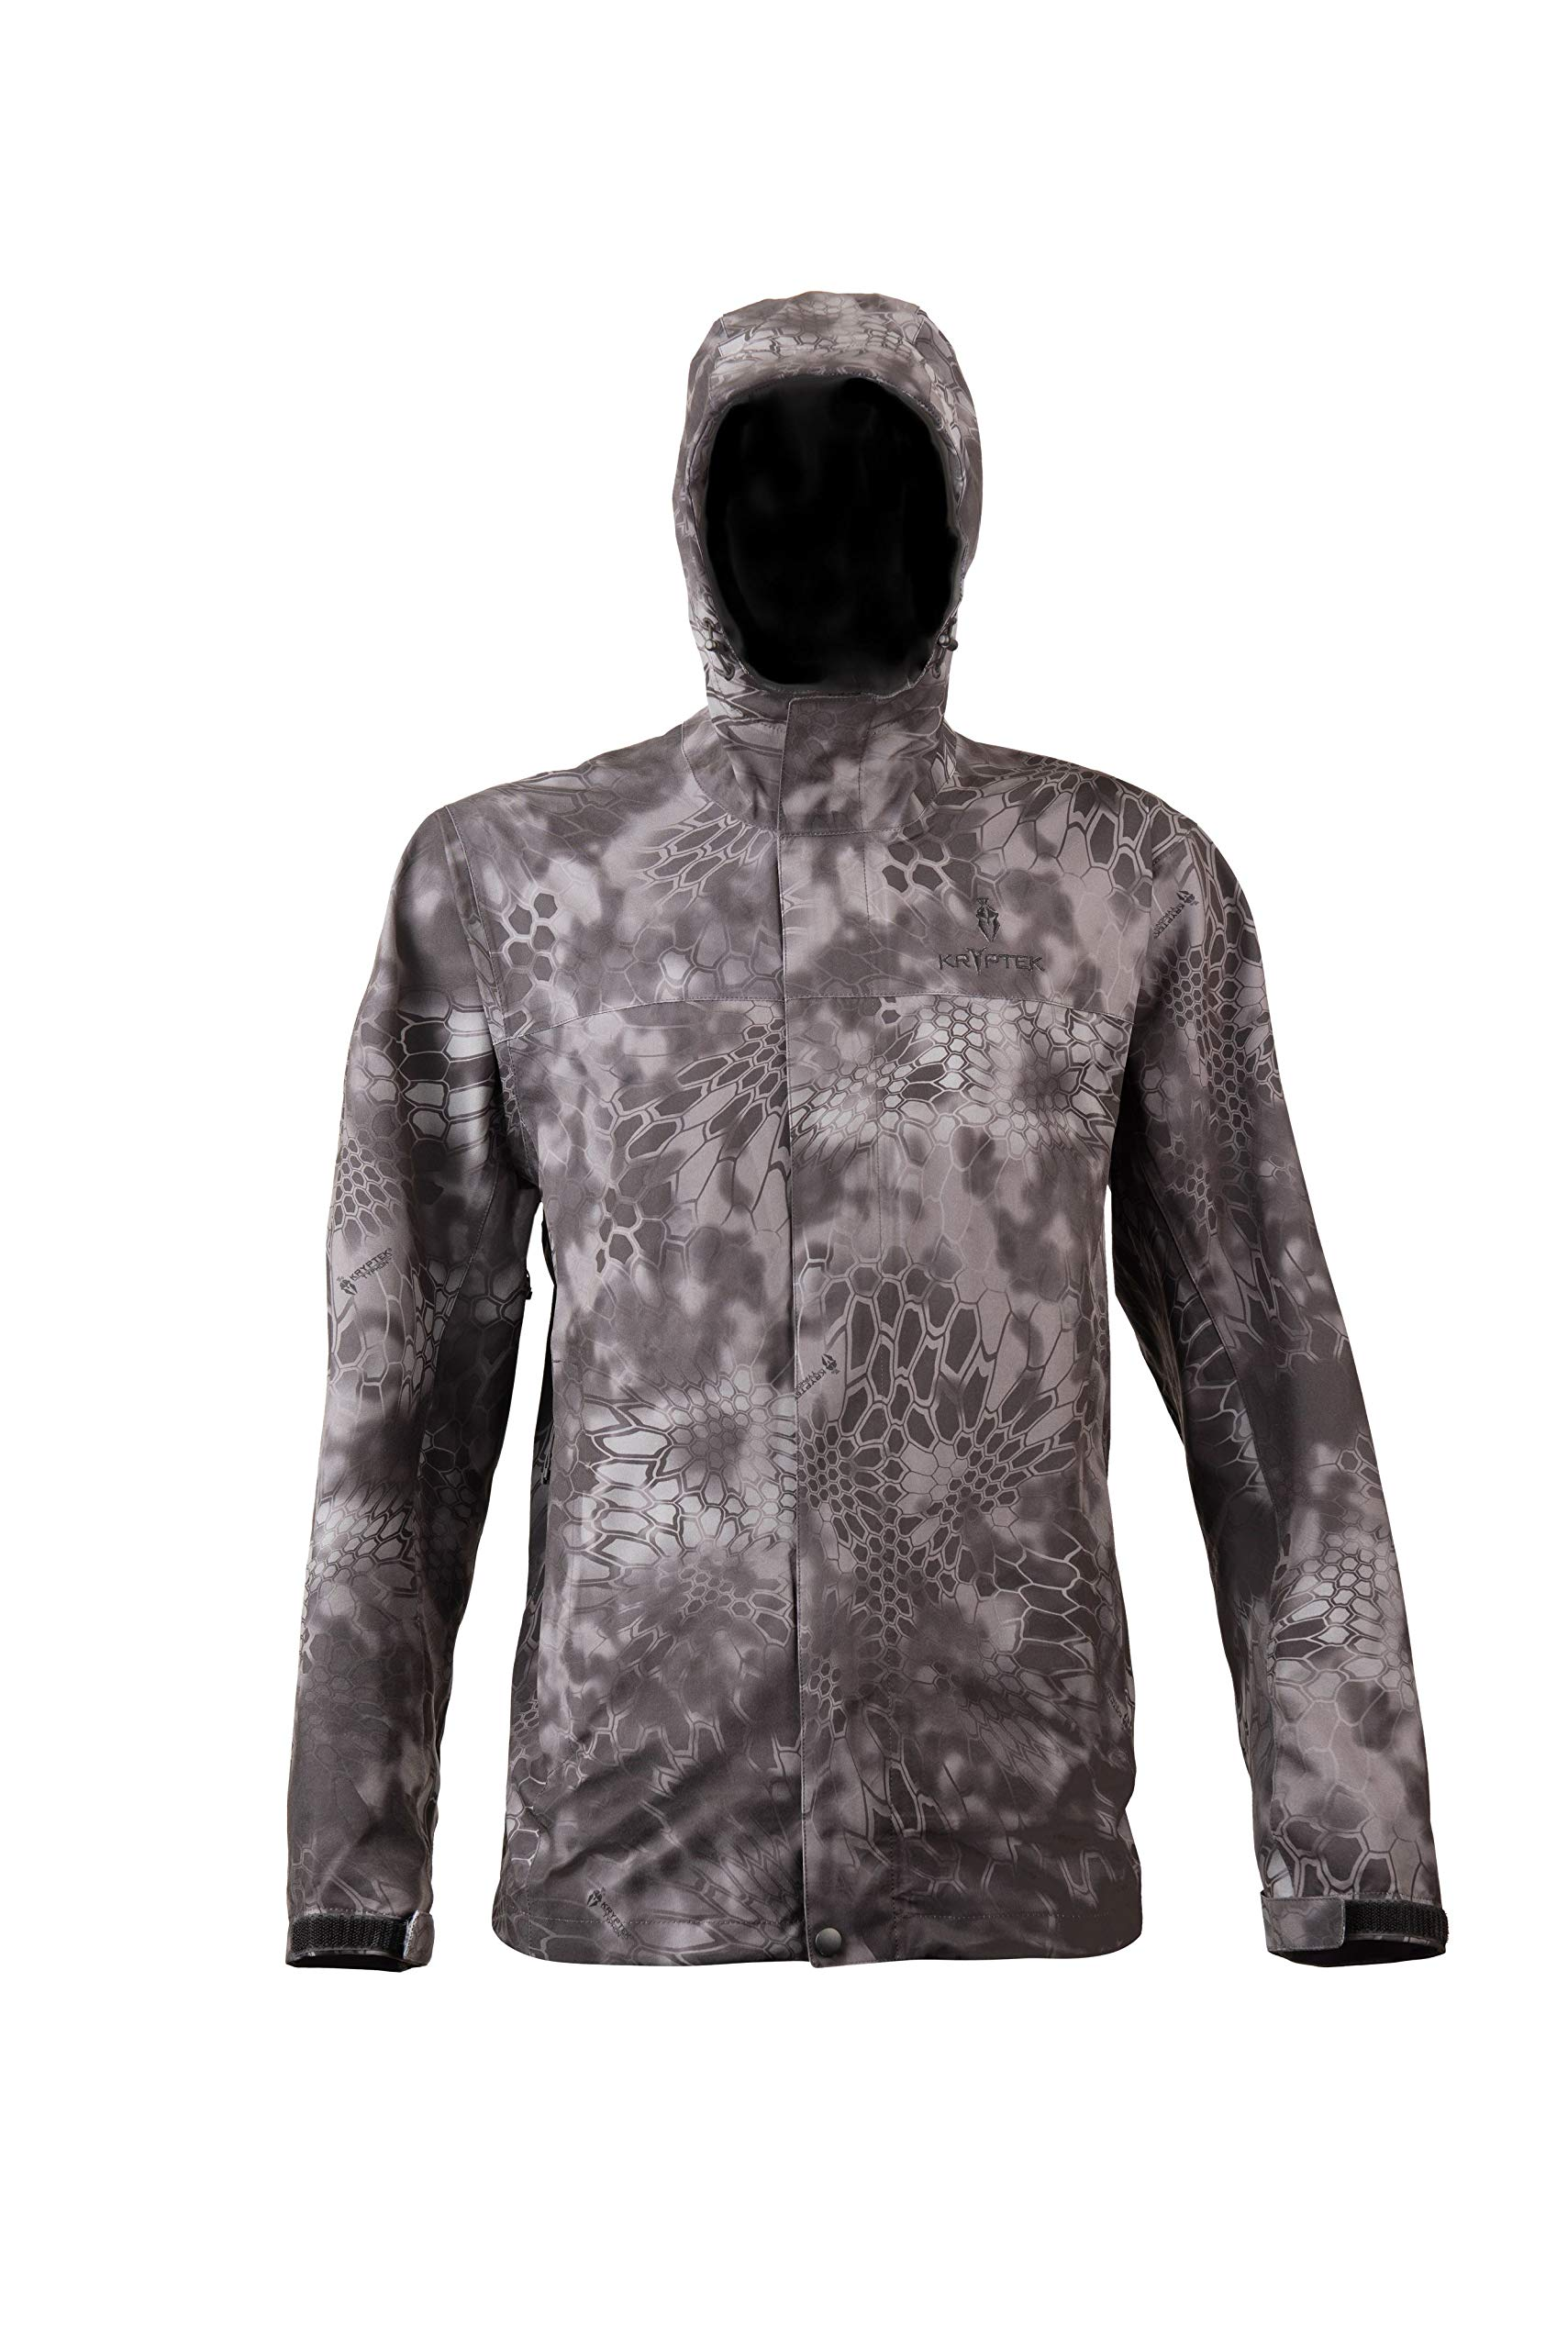 Kryptek Jupiter Camo Rain Jacket (Rain Gear Collection), Typhon, 2XL by Kryptek